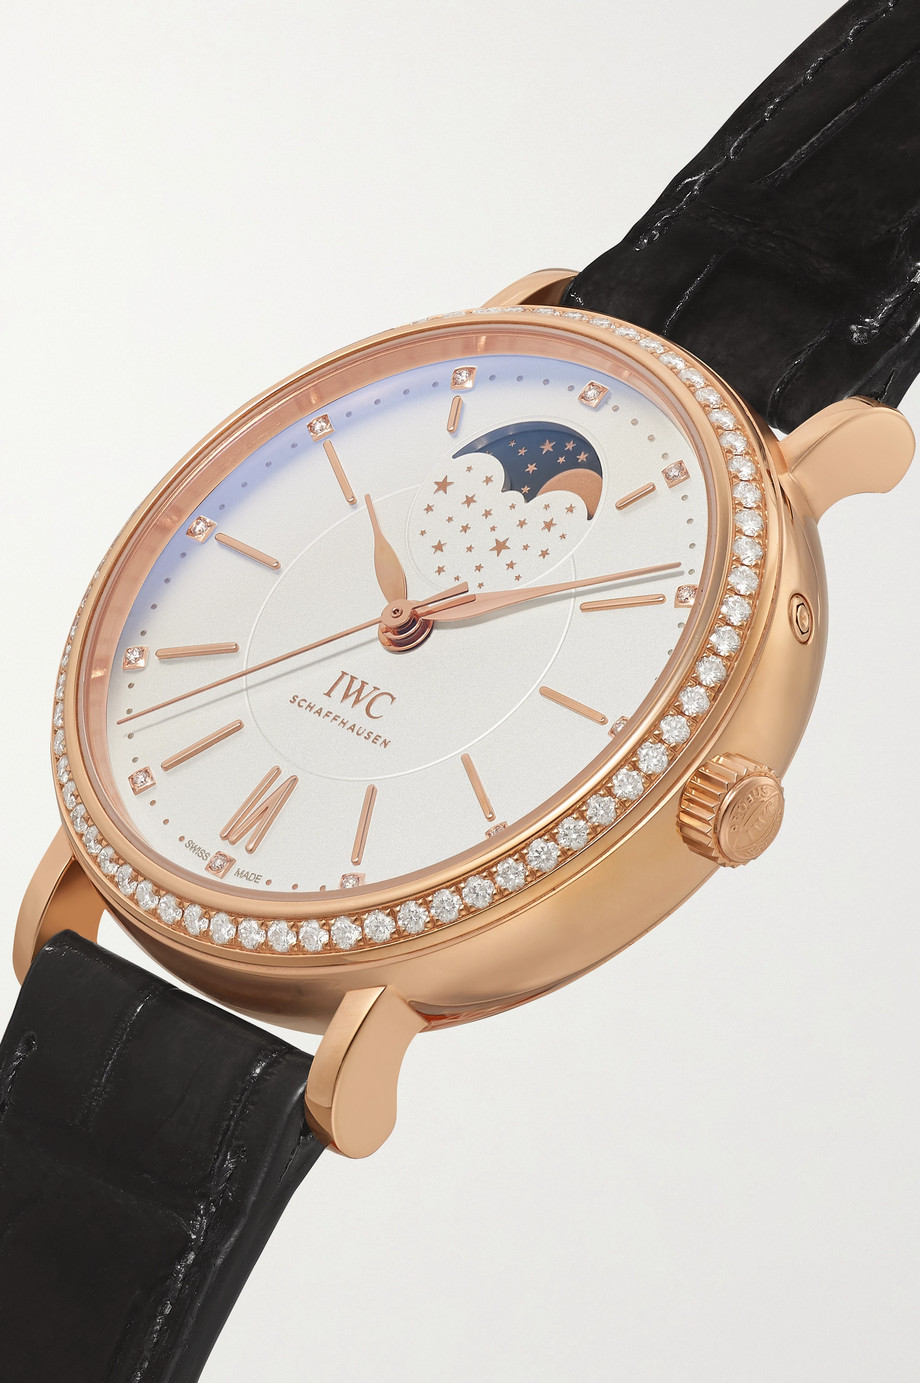 IWC SCHAFFHAUSEN Montre en or 18 carats et diamants à bracelet en alligator Portofino Automatic Moon Phase 37 mm